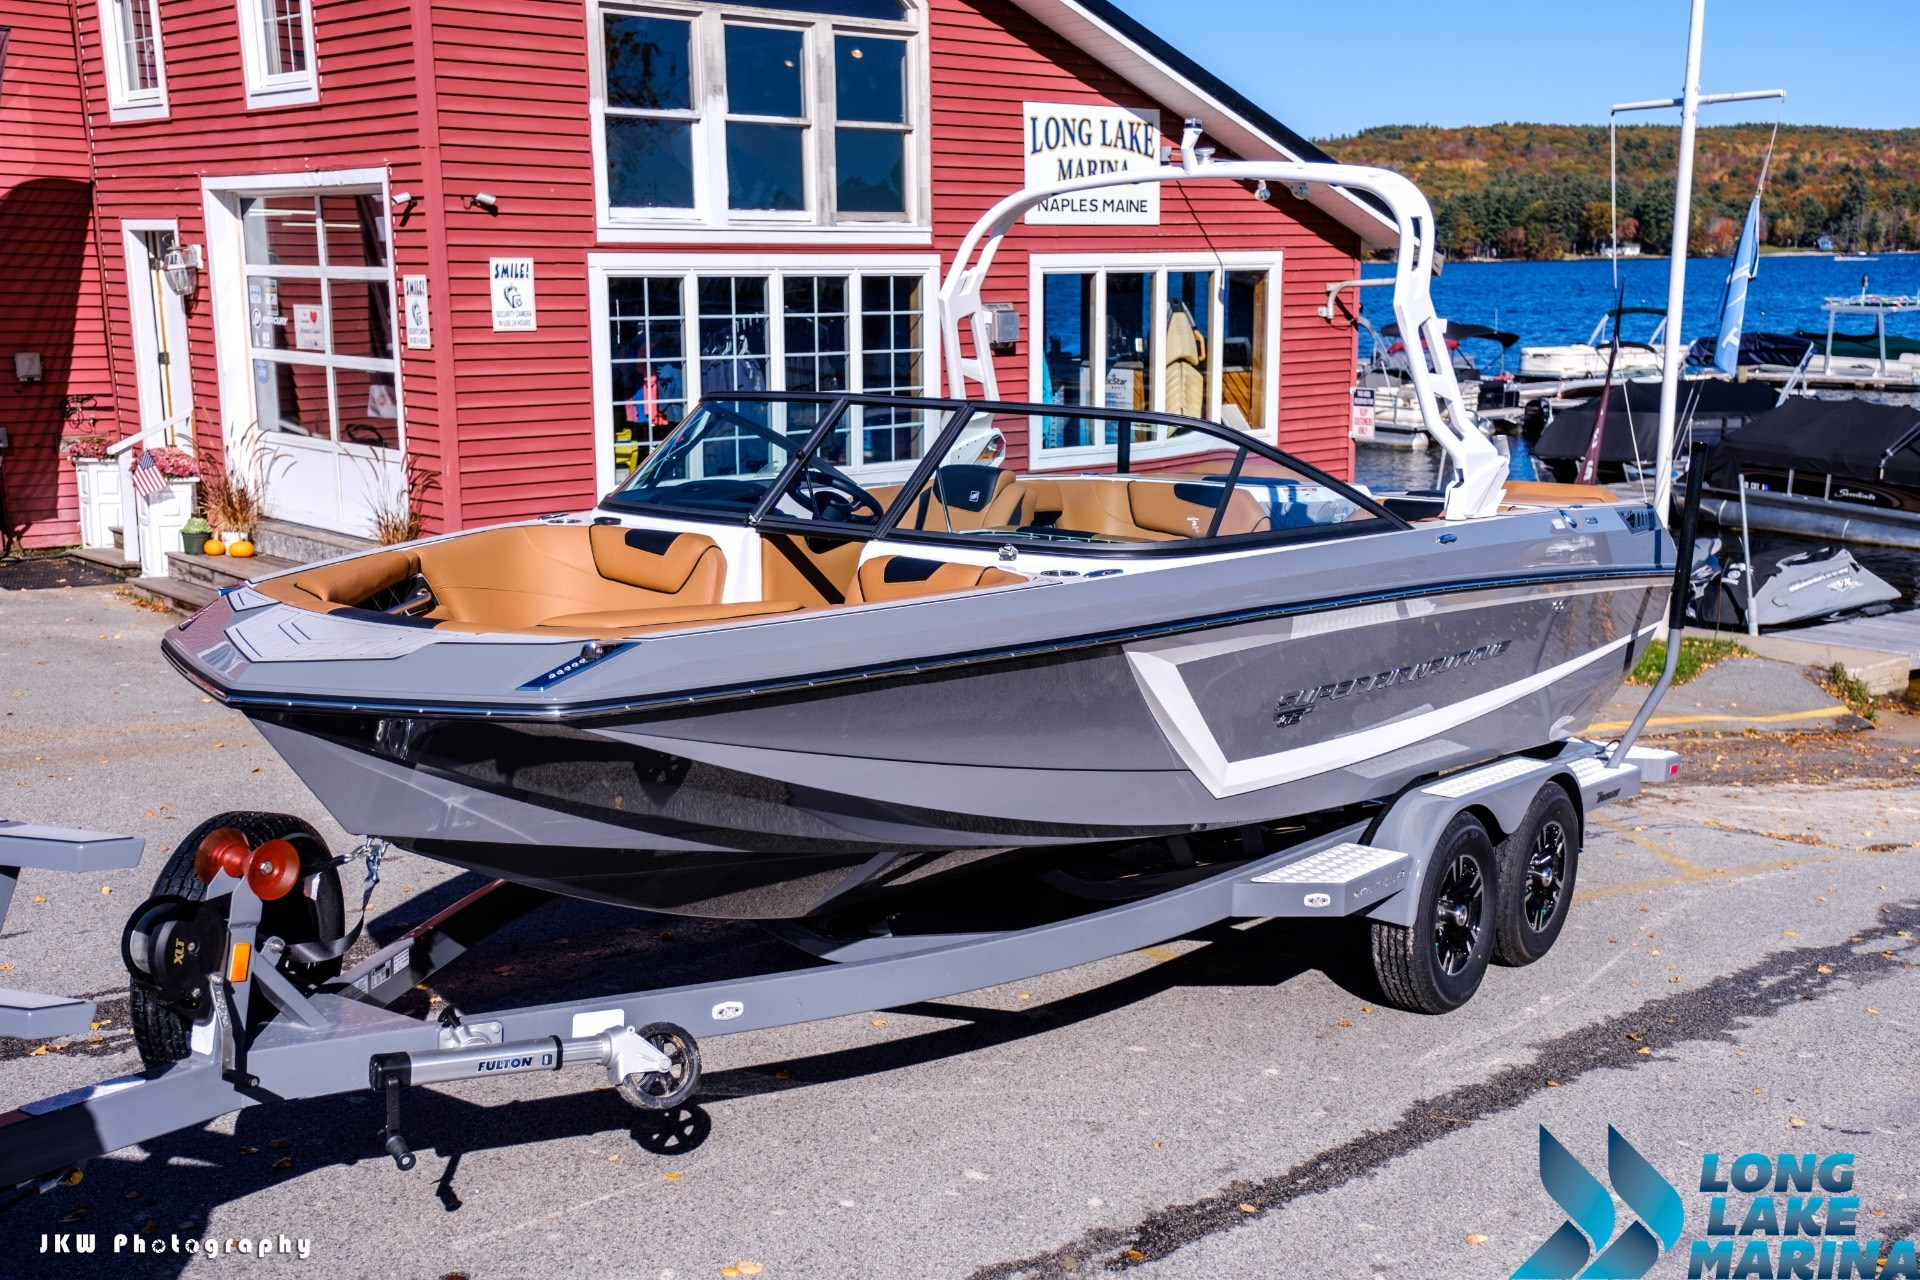 2018 Nautique Super Air Nautique GS22 in Naples, Maine